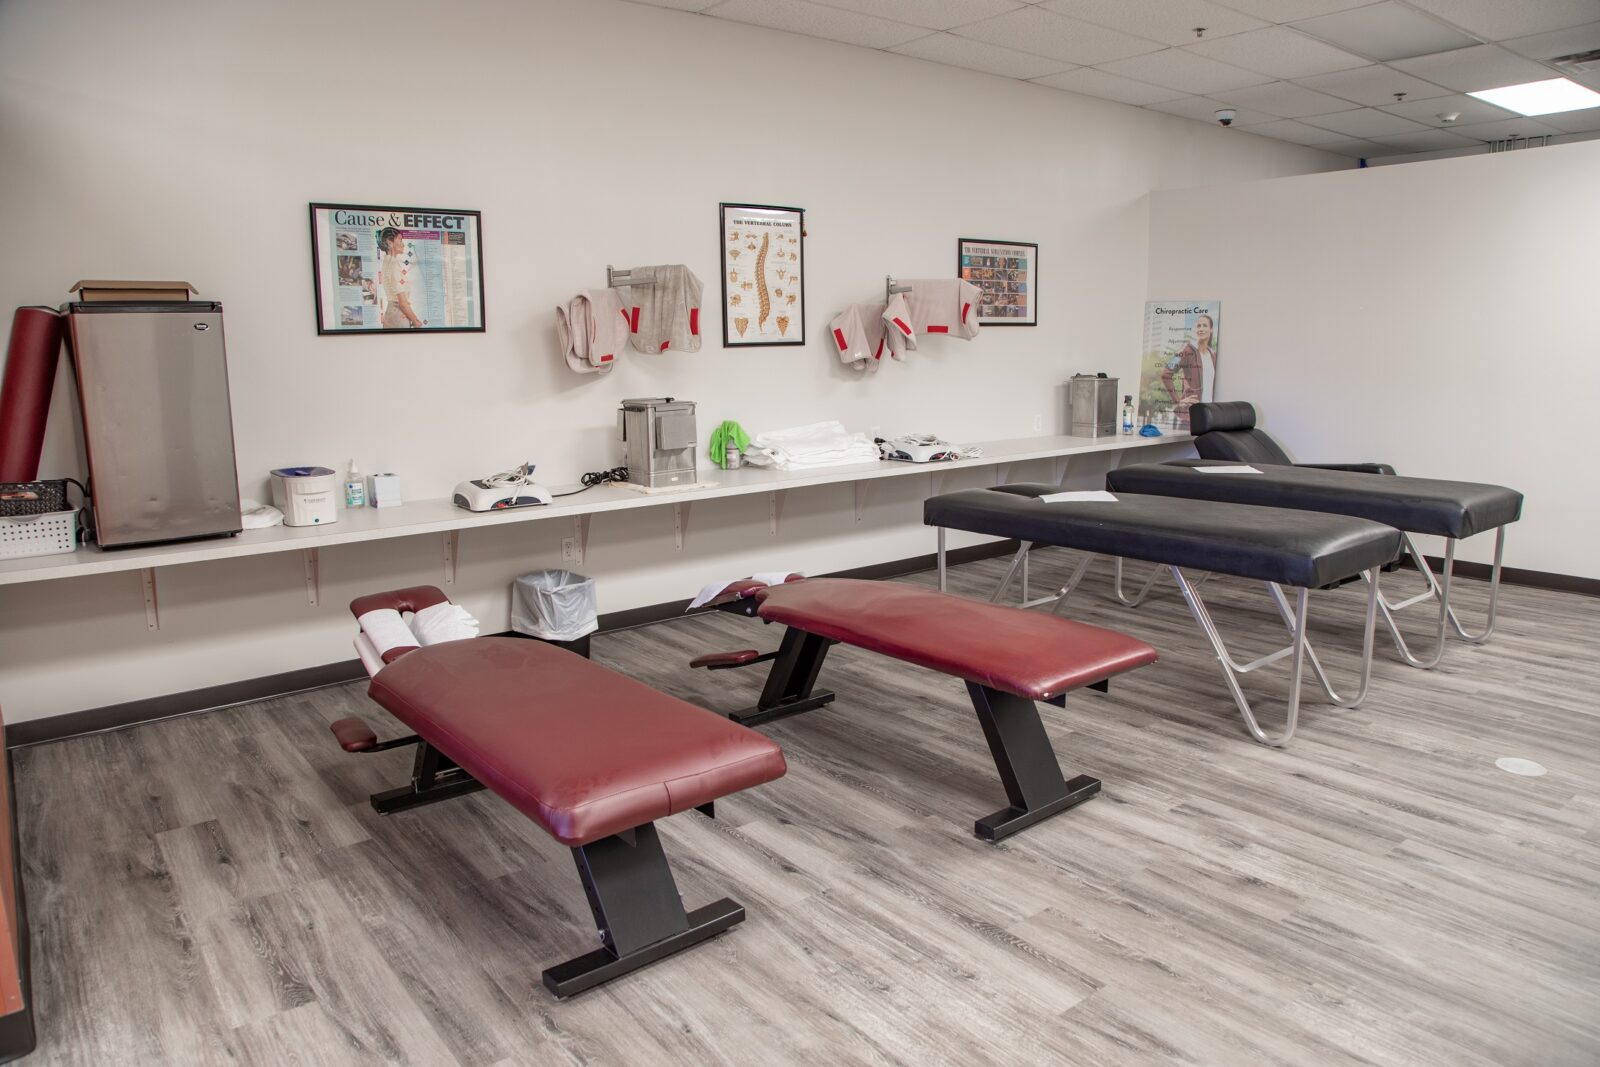 Surprise AZ Chiropractor Near Me showing the concept of Surprise Chiropractic